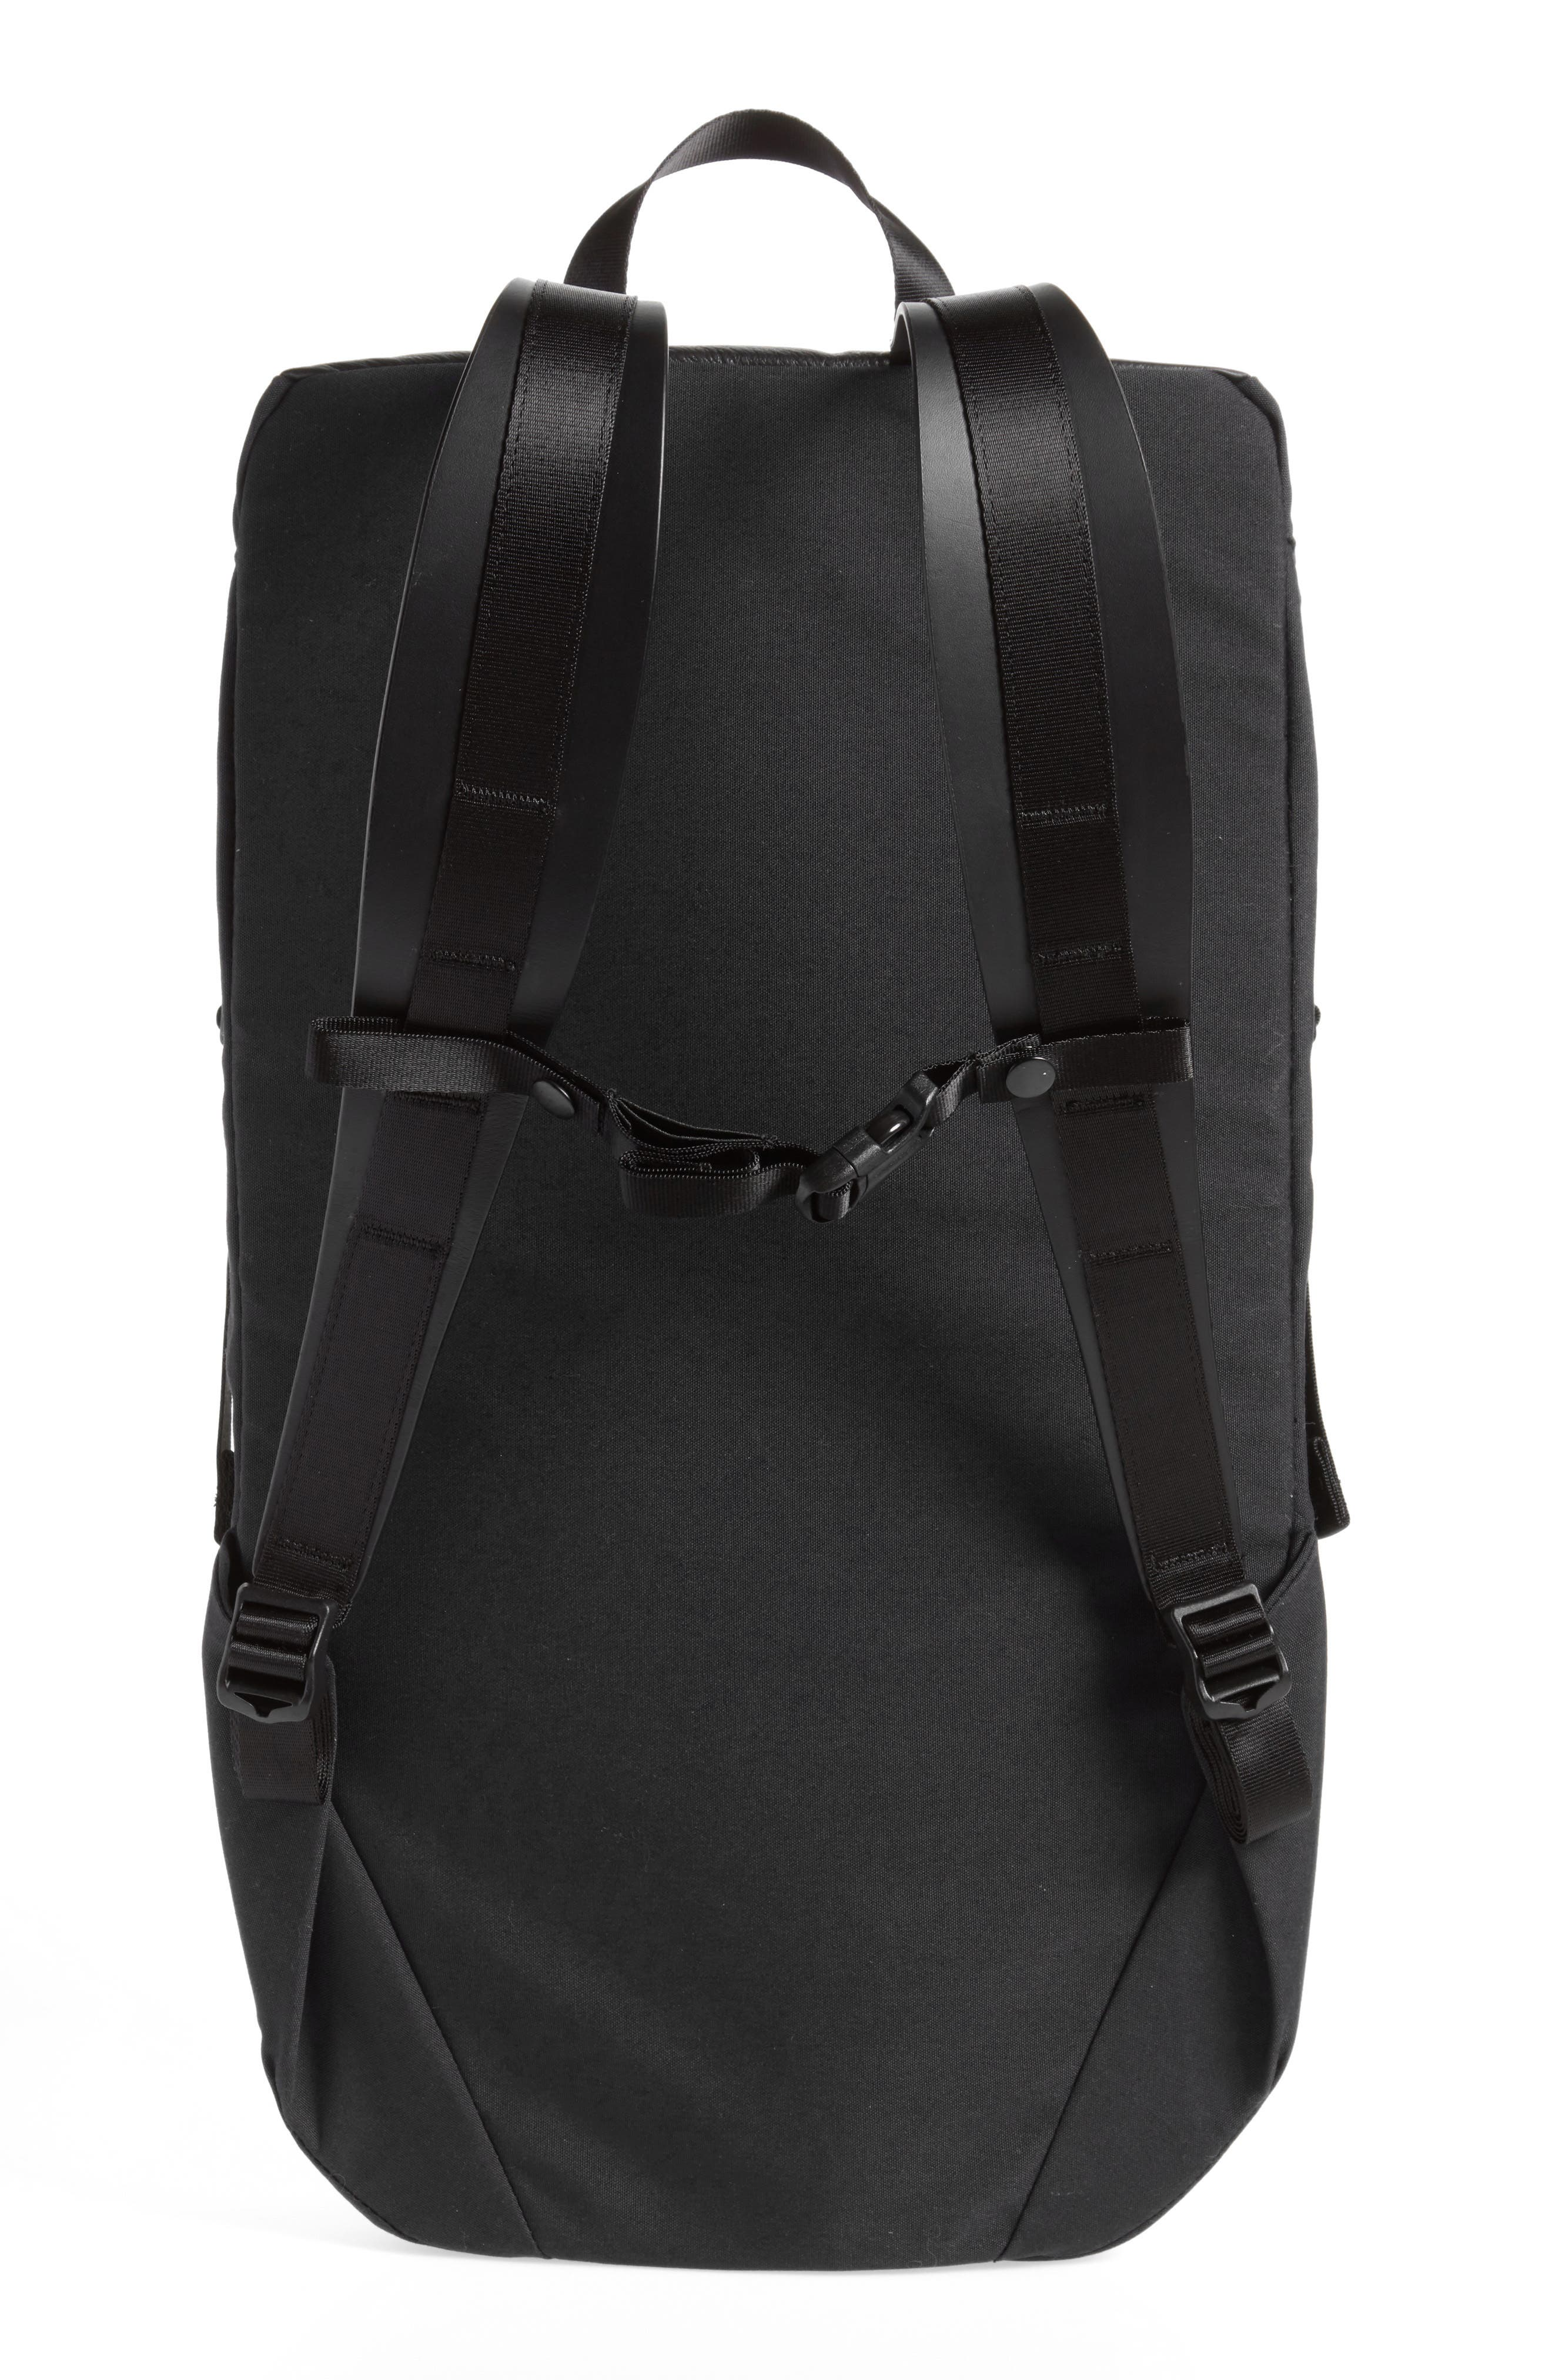 Quick Pack Lux Backpack,                             Alternate thumbnail 3, color,                             Black